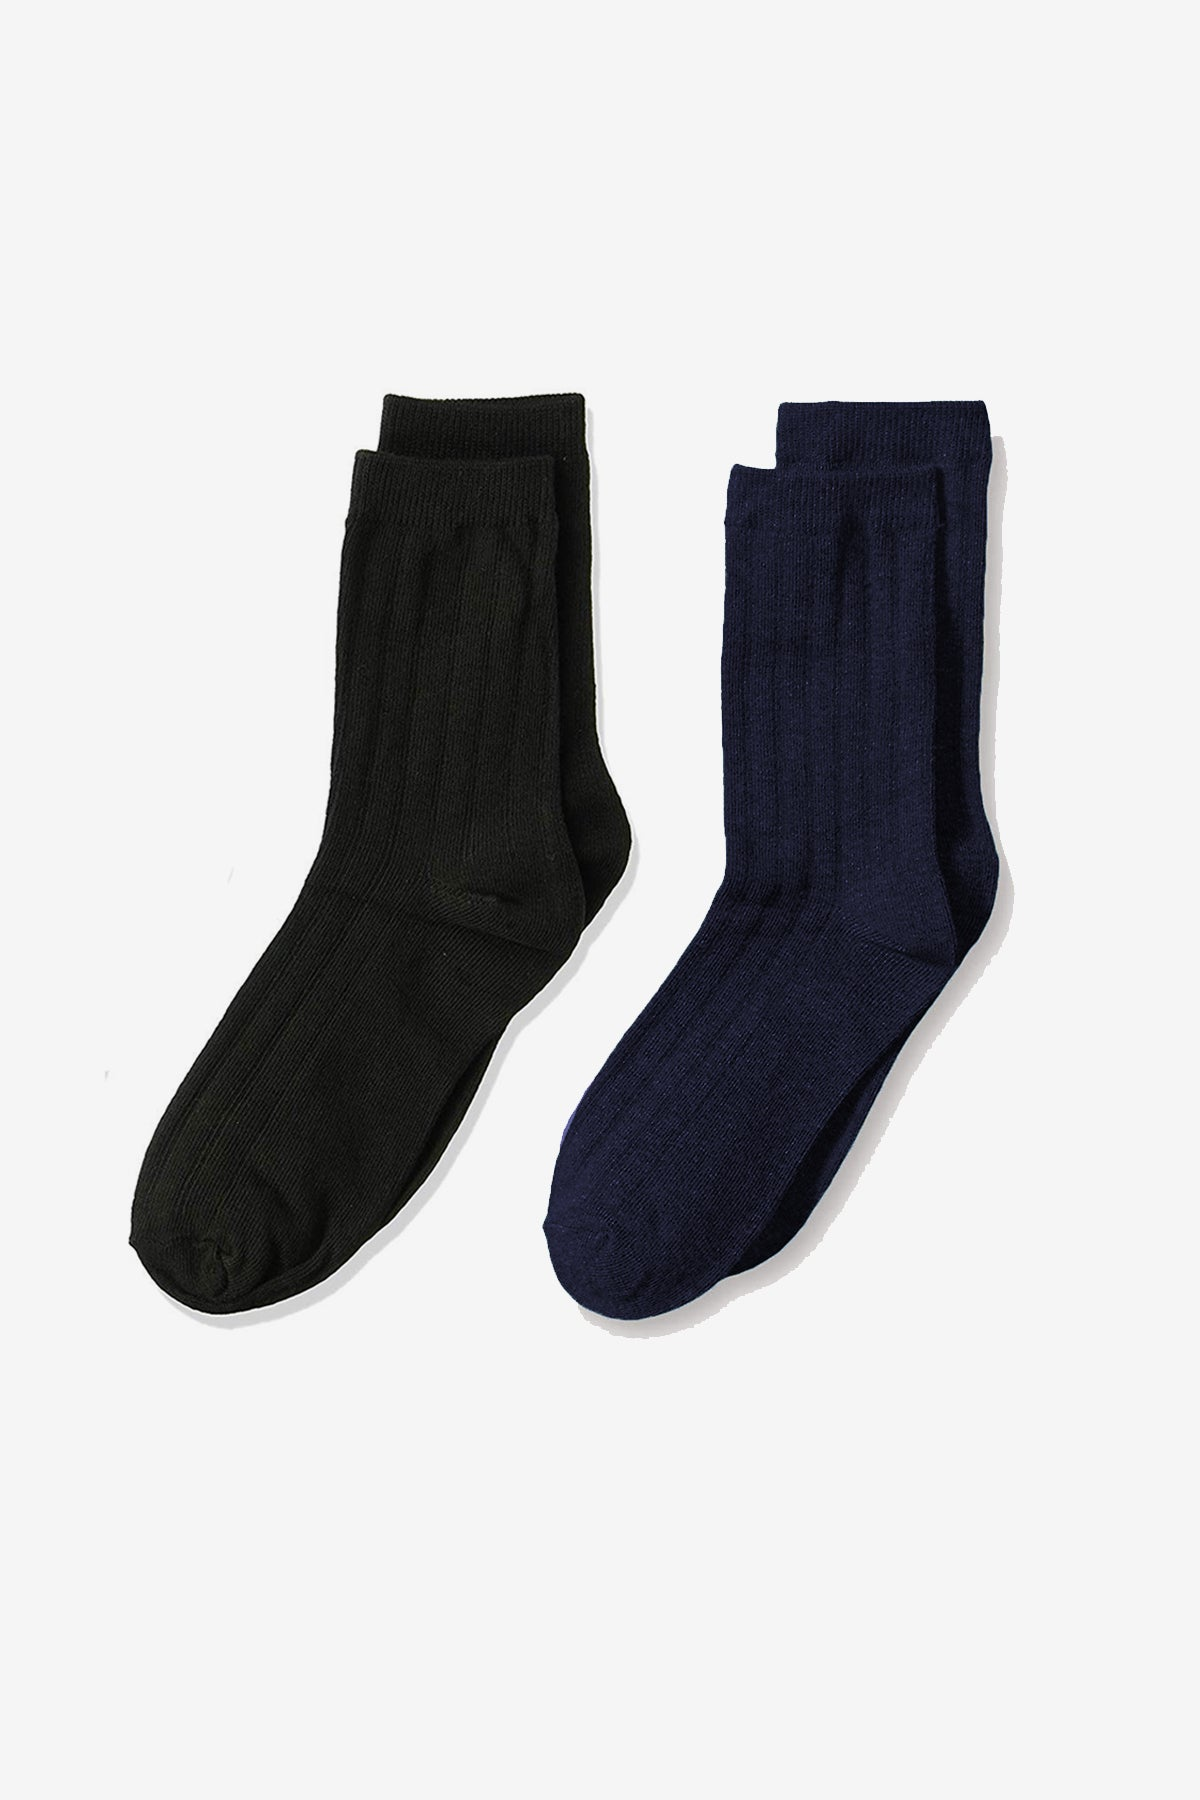 Jefferies Socks Rib Crew Socks 2-pack